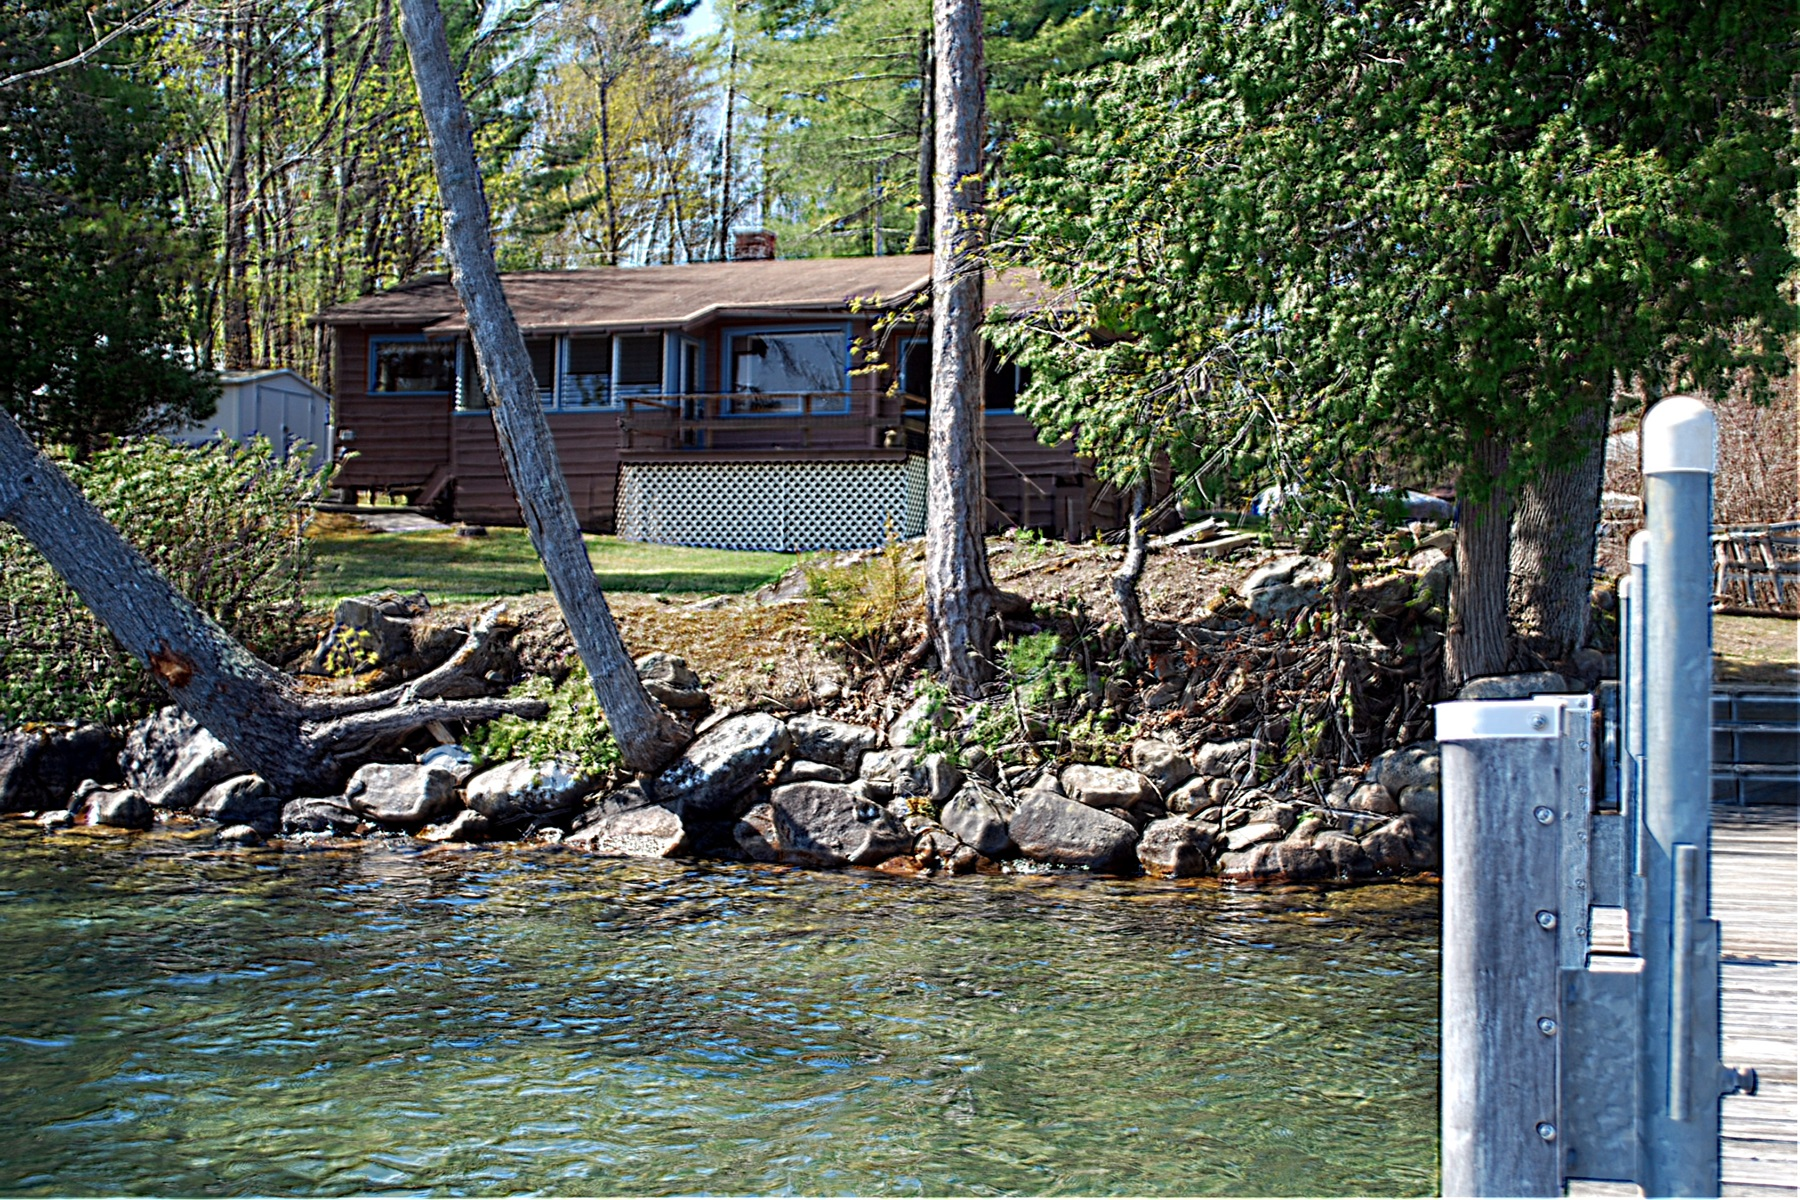 Single Family Home for Sale at Waterfront Cottage on Lake George 39 Pine Cove Rd Hague, 12836 United States